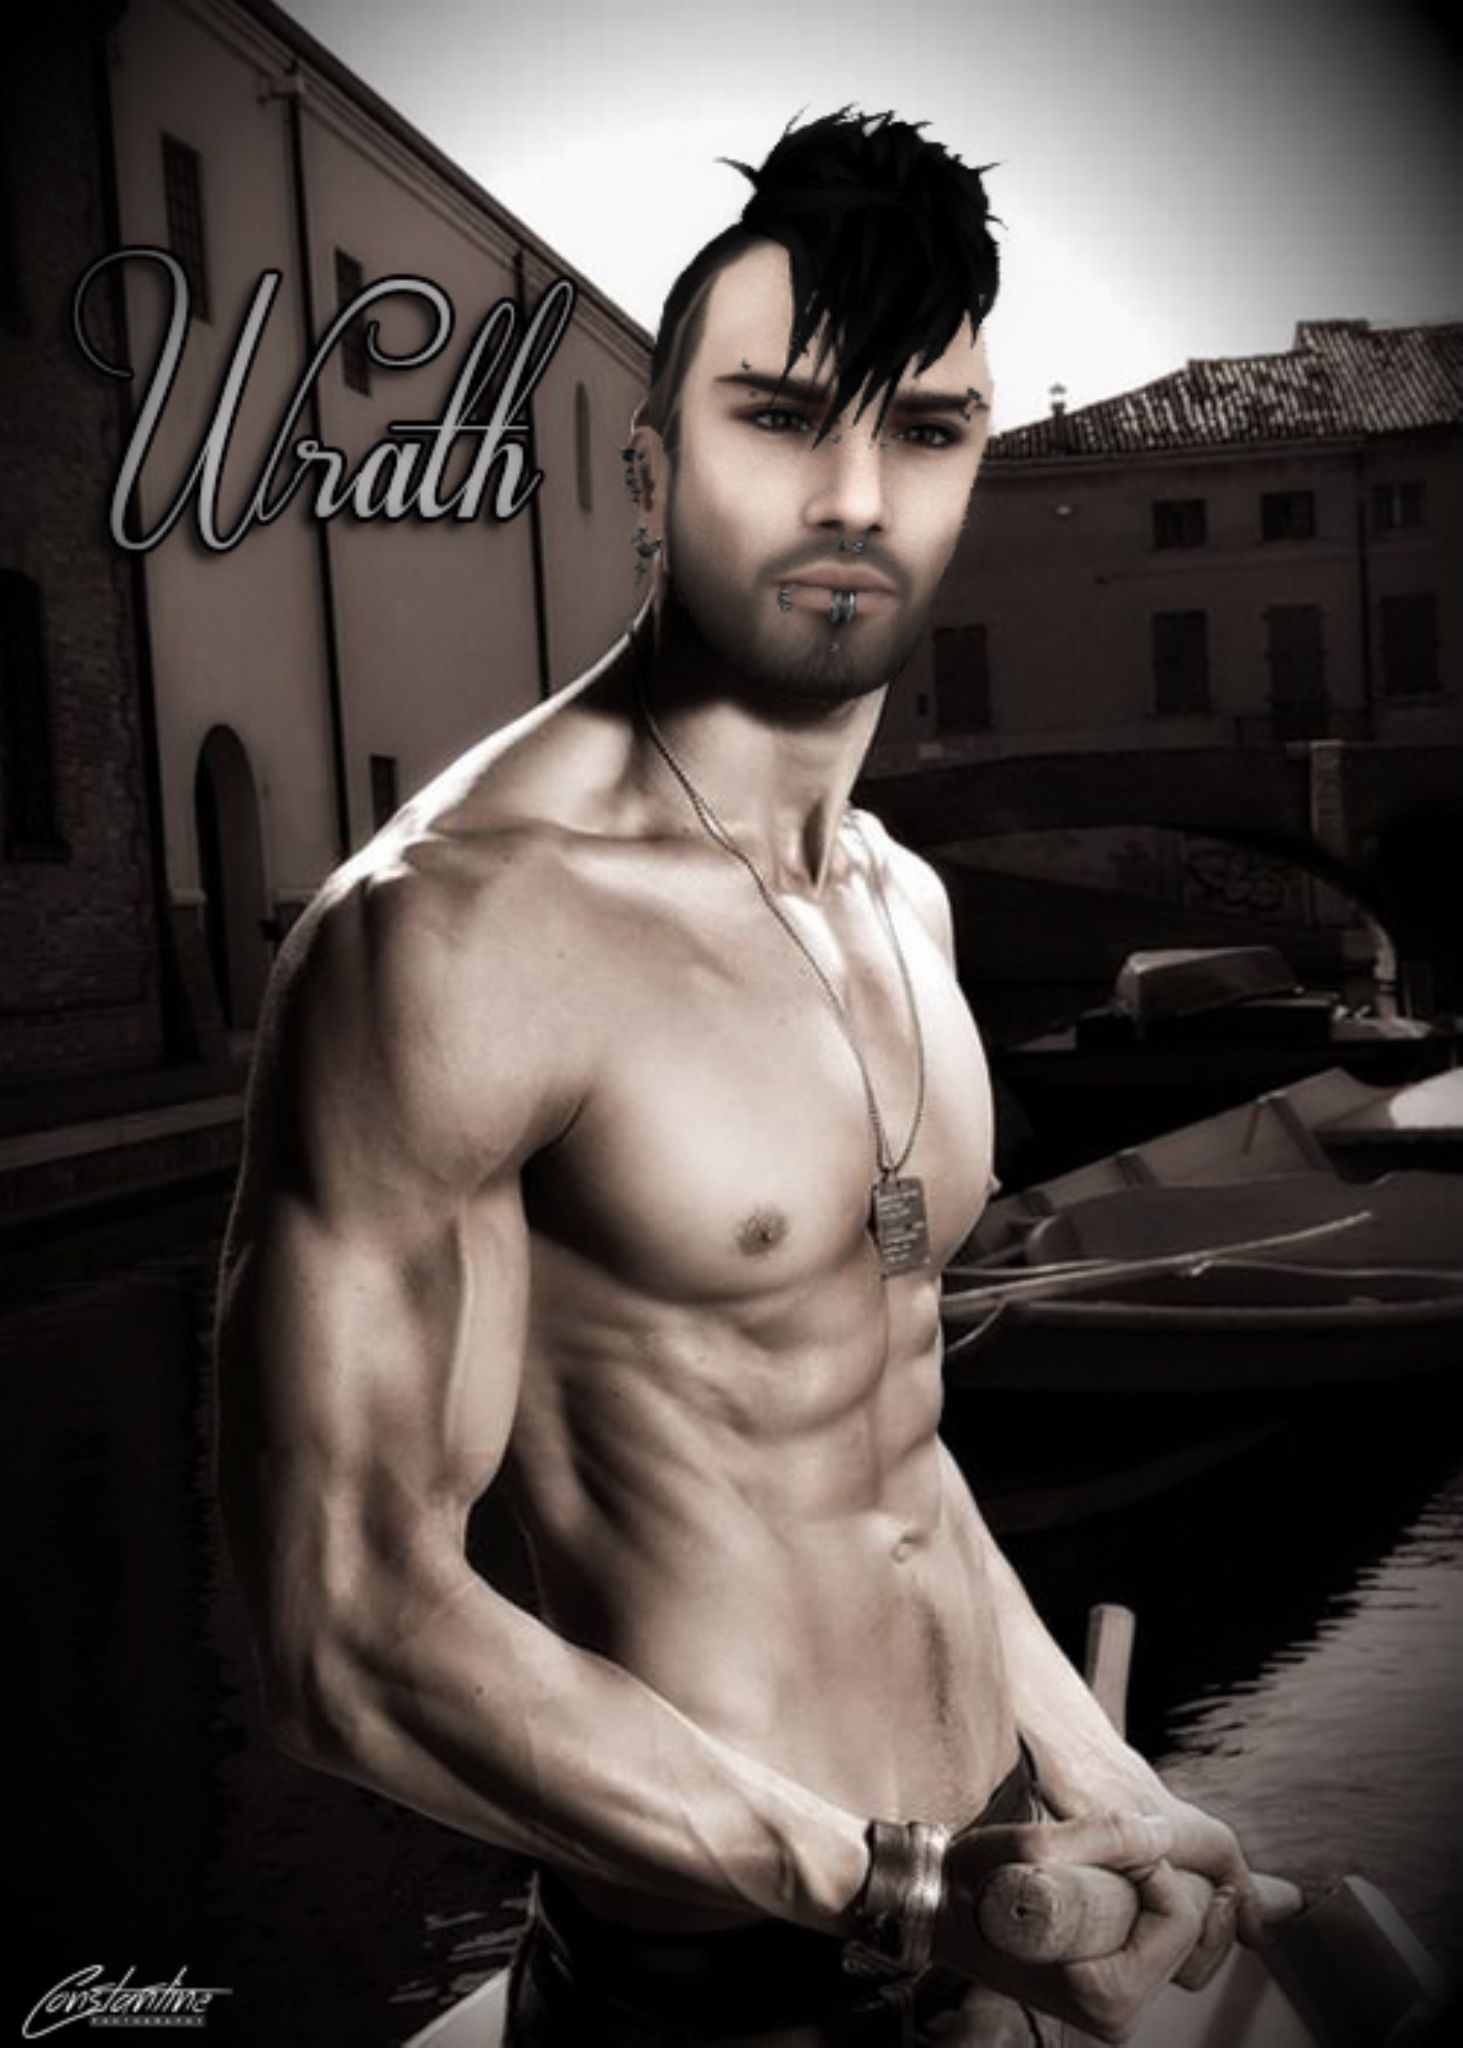 Wrath Venice by Wrath Constantine